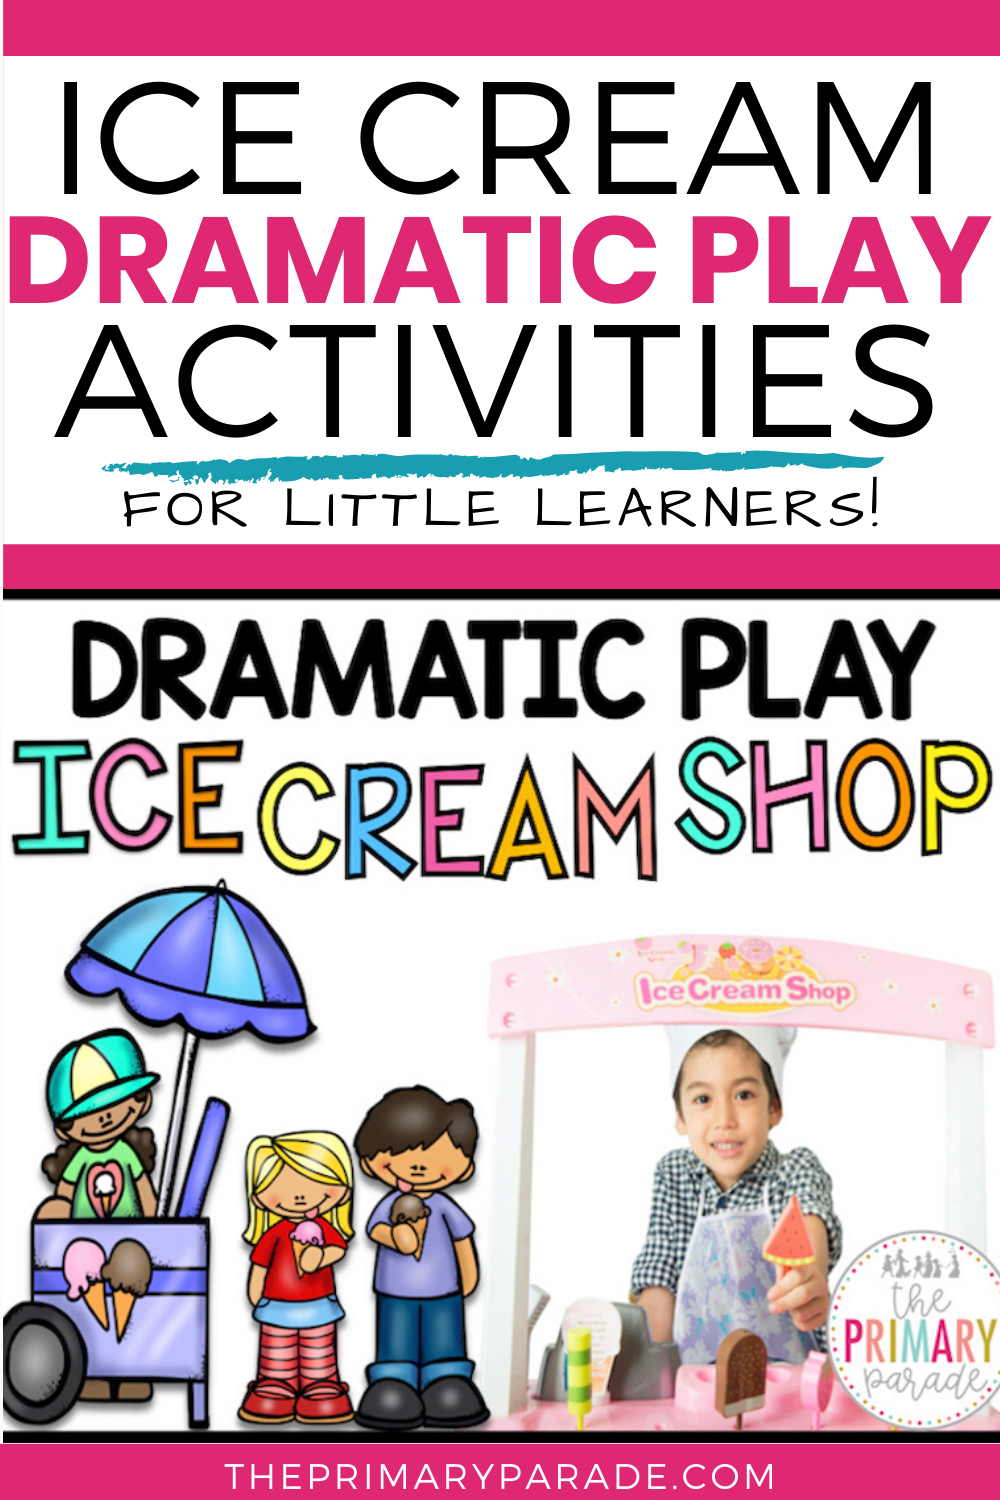 Dramatic Play Center Ice Cream Shop The Primary Parade